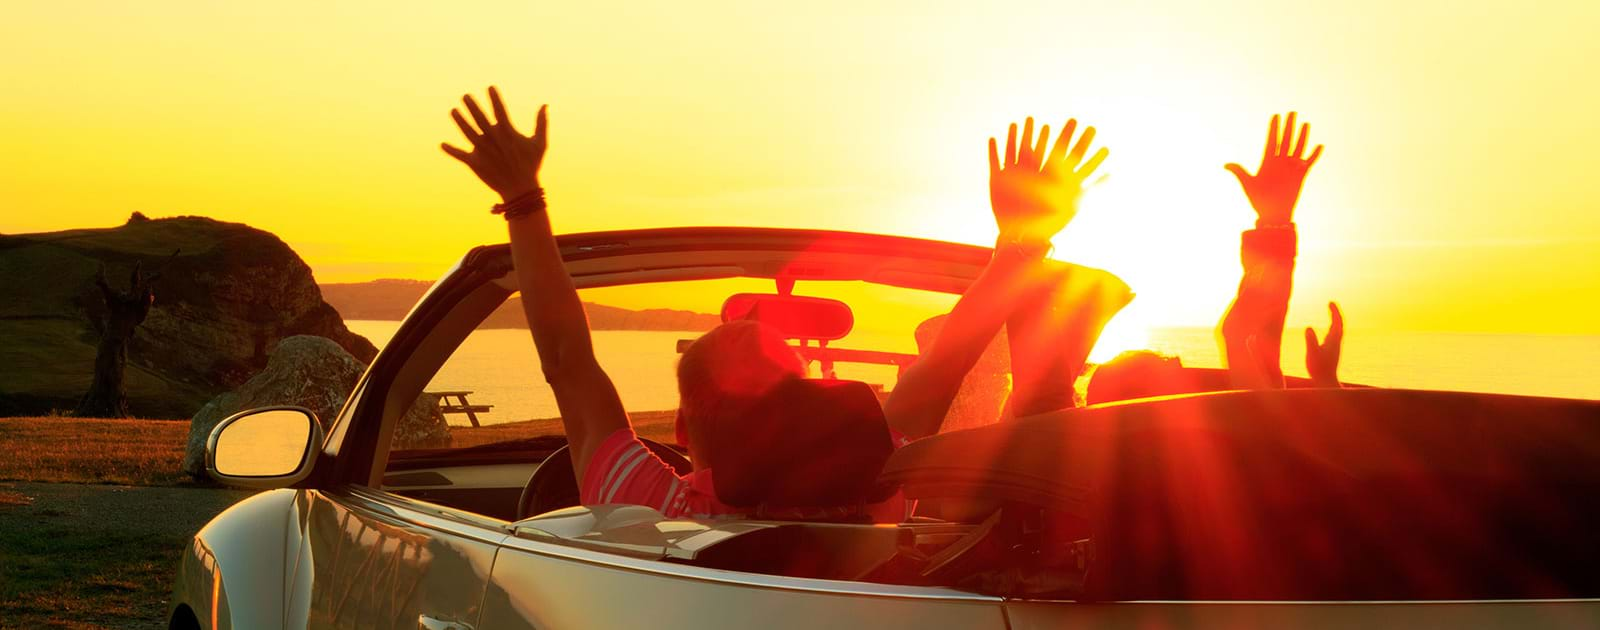 Group riding in convertible hands in the air